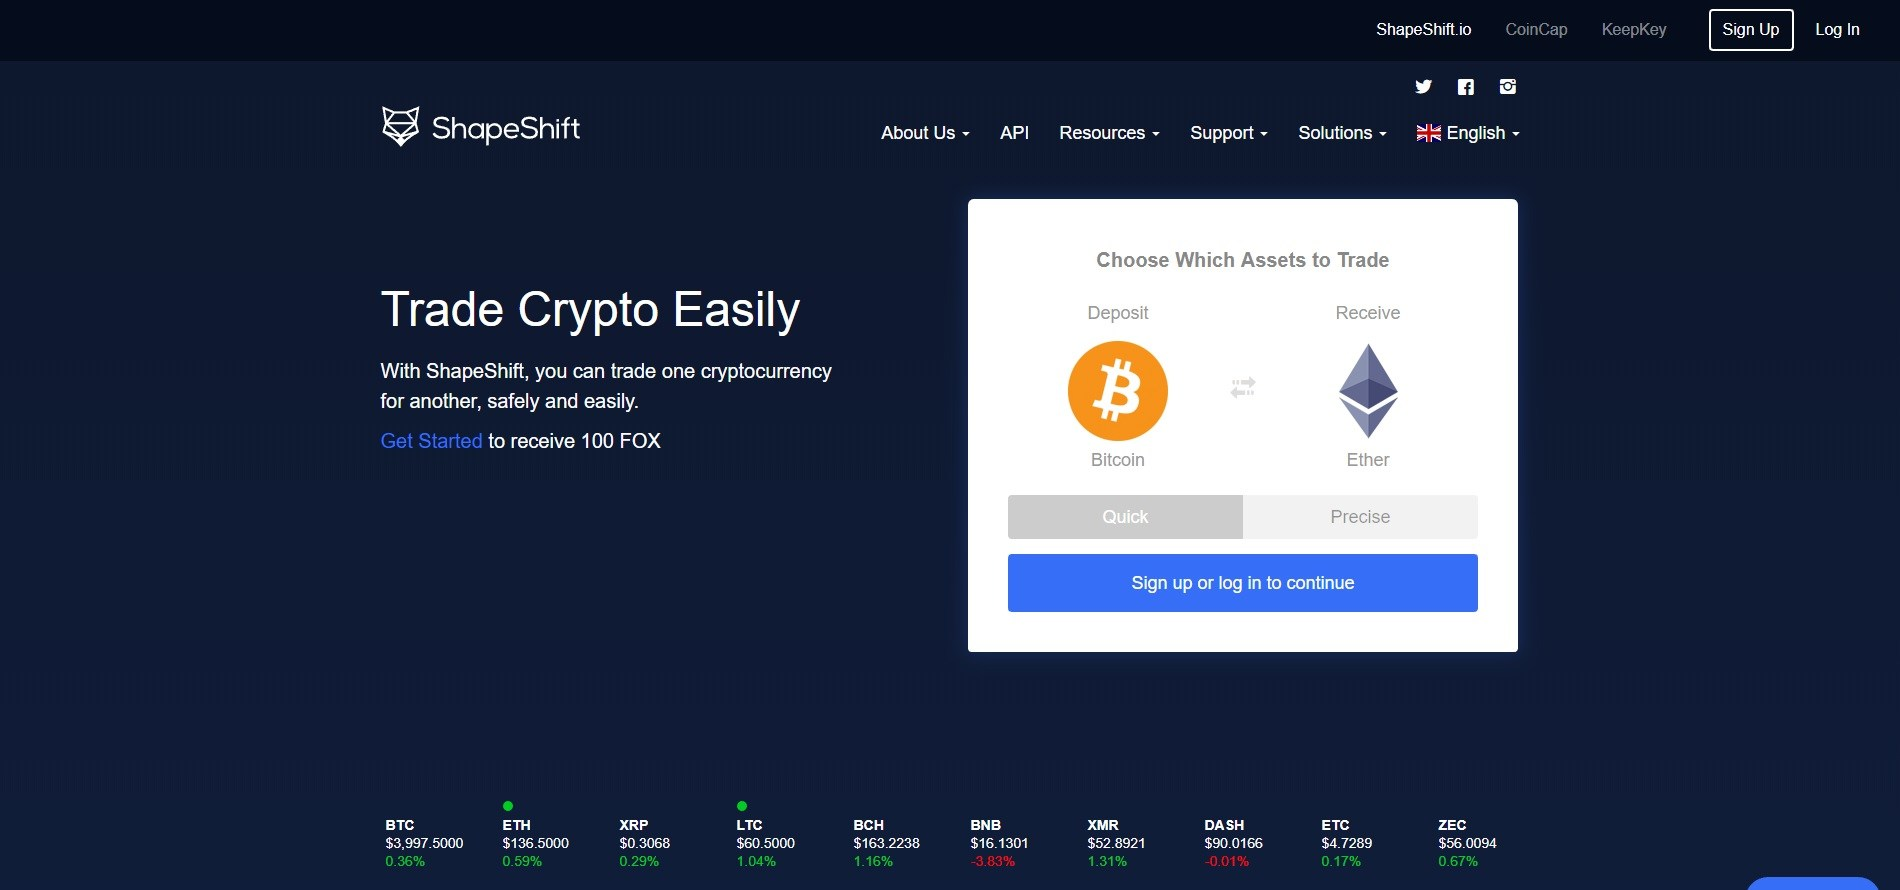 shapeshift trade crypto assets